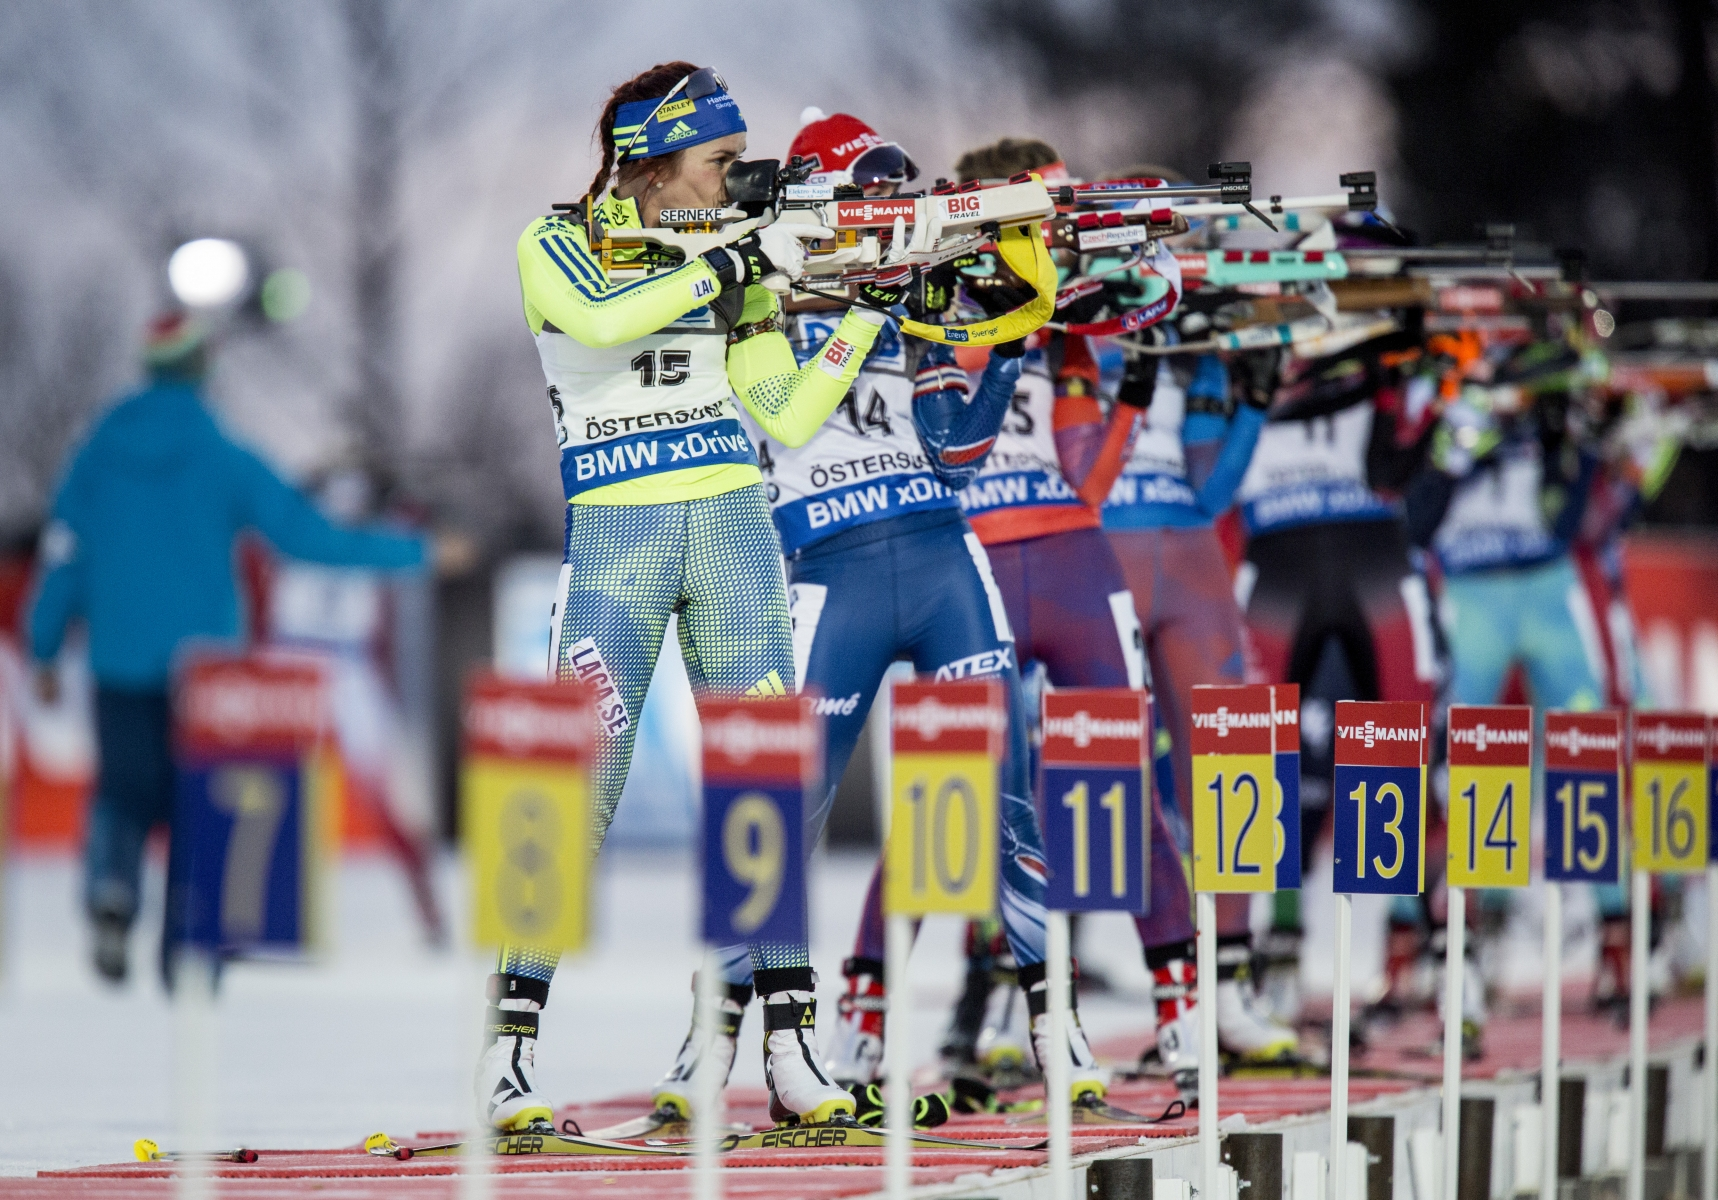 World Cup Biathlon Östersund 2015